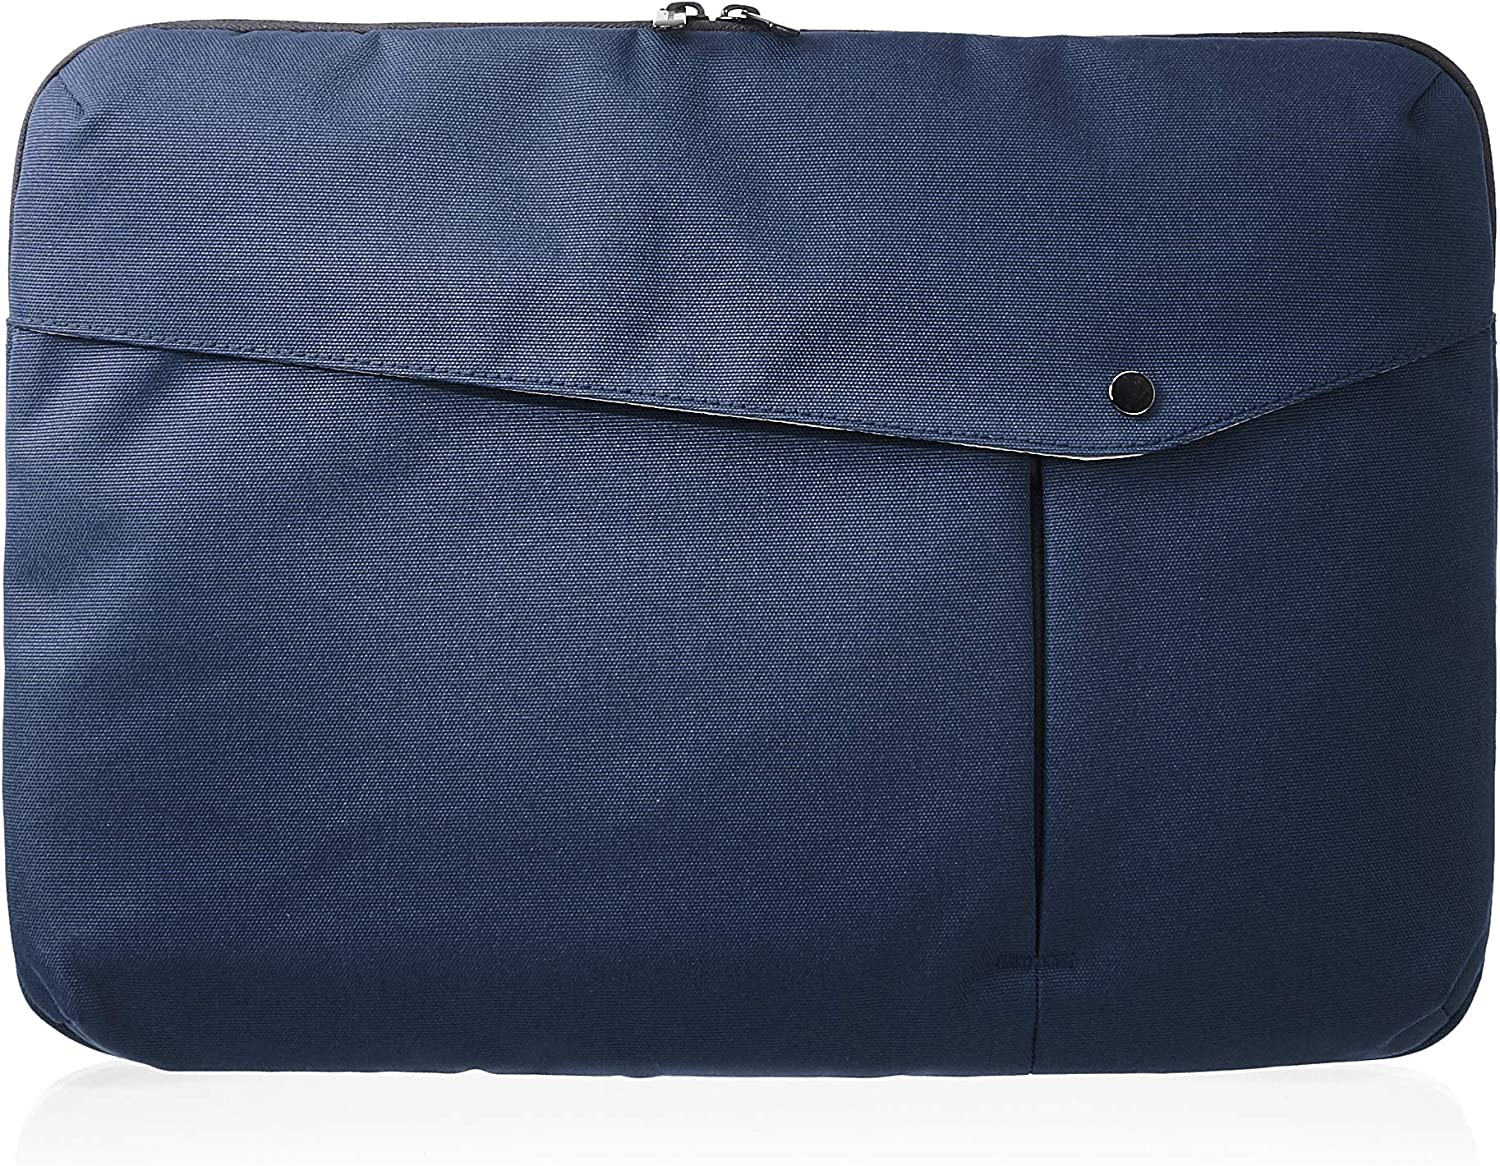 AmazonBasics Laptop Sleeve - 15-Inch, Navy